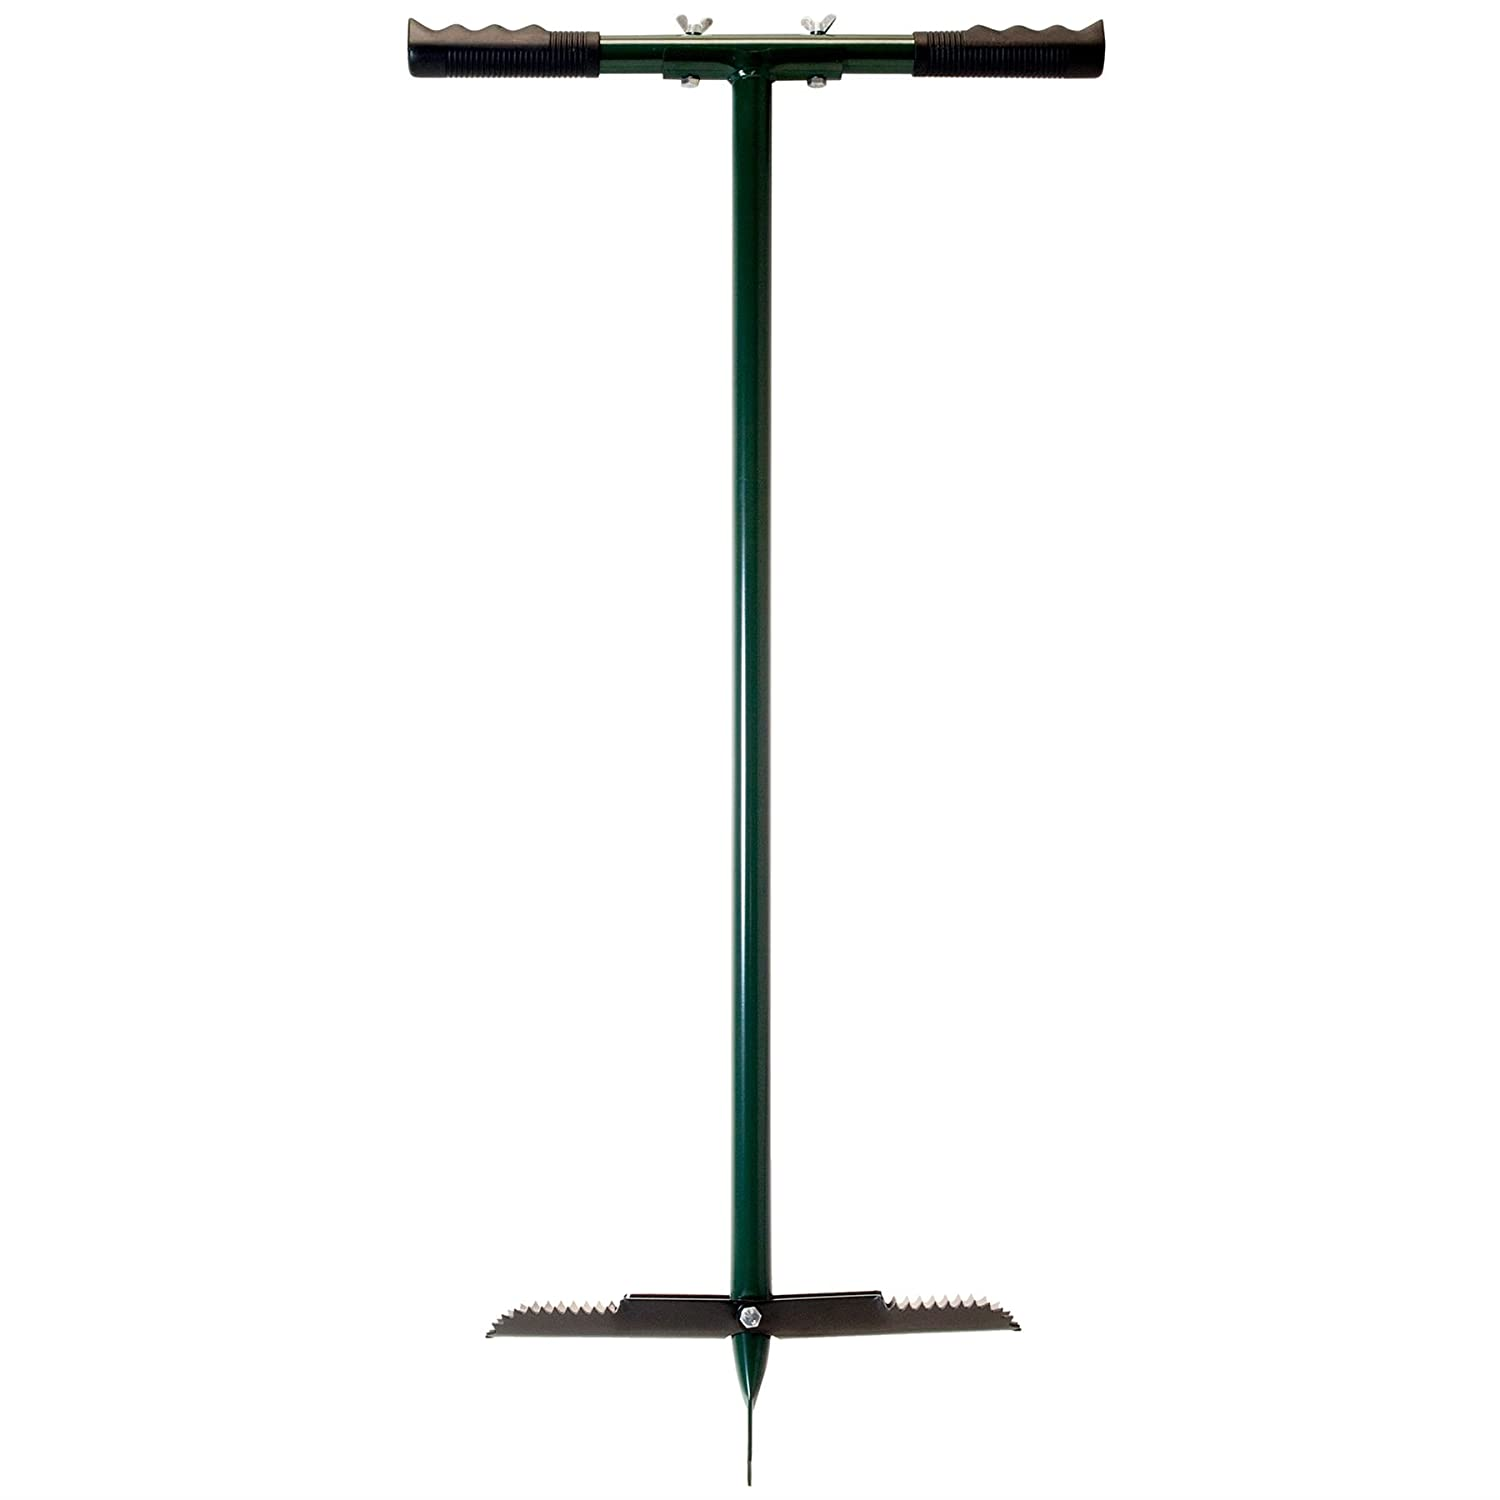 Compost Aerating Gardening Tool Made From Iron With Comfortable Handles Great Ideas By Post